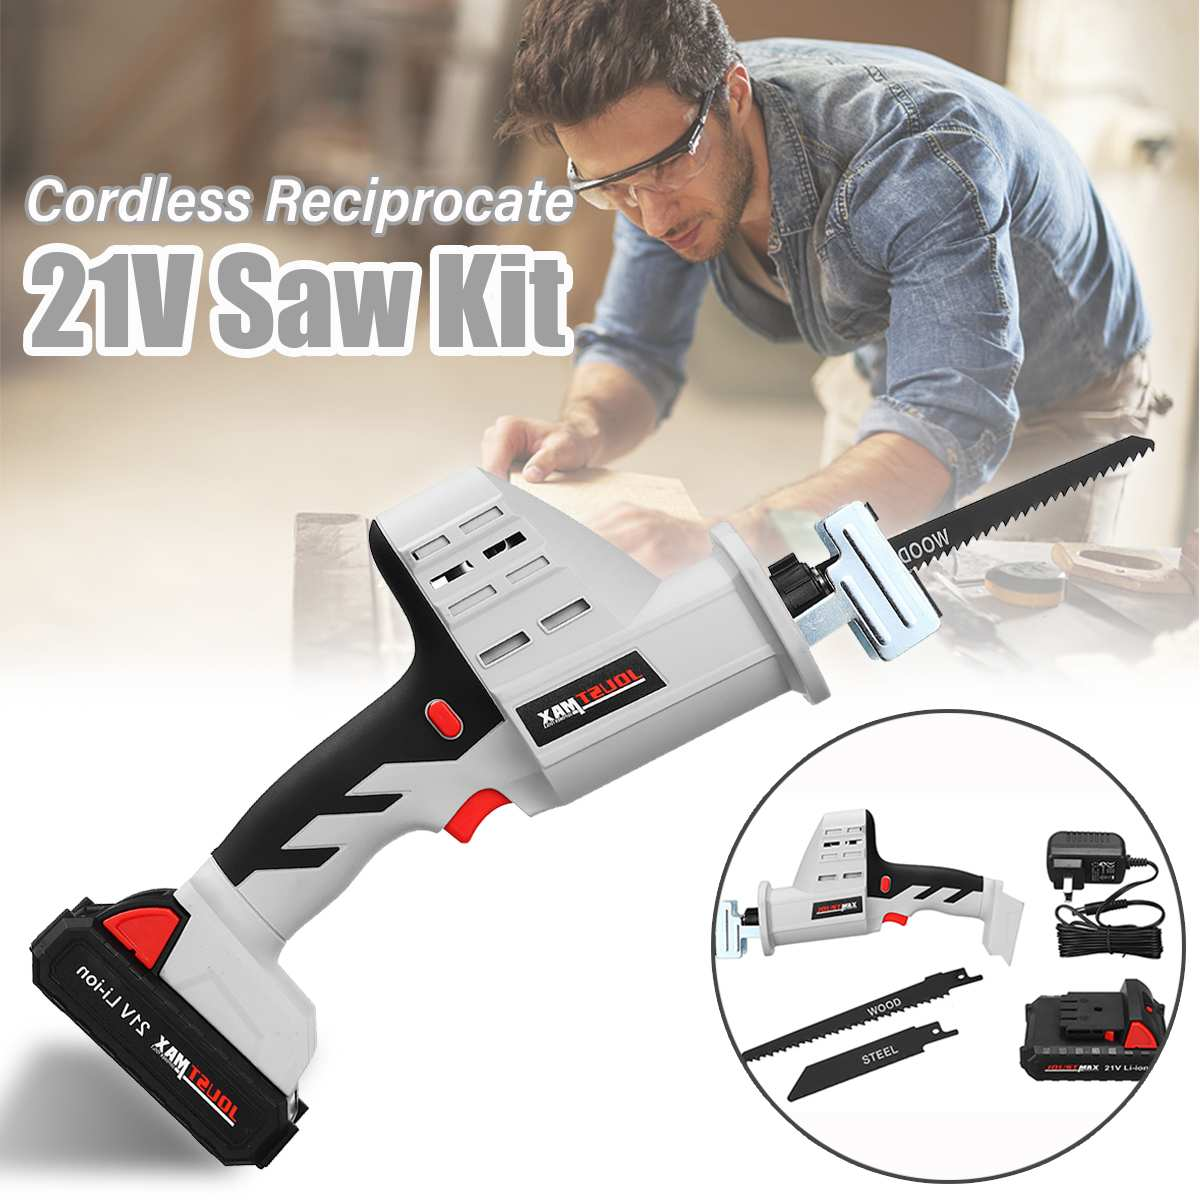 JOUST MAX 21V Portable Charging Cordless Electric Li-Ion Reciprocating Saw Wood Metal Saws Cutting Tool W/ 2 Blades Power ToolsJOUST MAX 21V Portable Charging Cordless Electric Li-Ion Reciprocating Saw Wood Metal Saws Cutting Tool W/ 2 Blades Power Tools